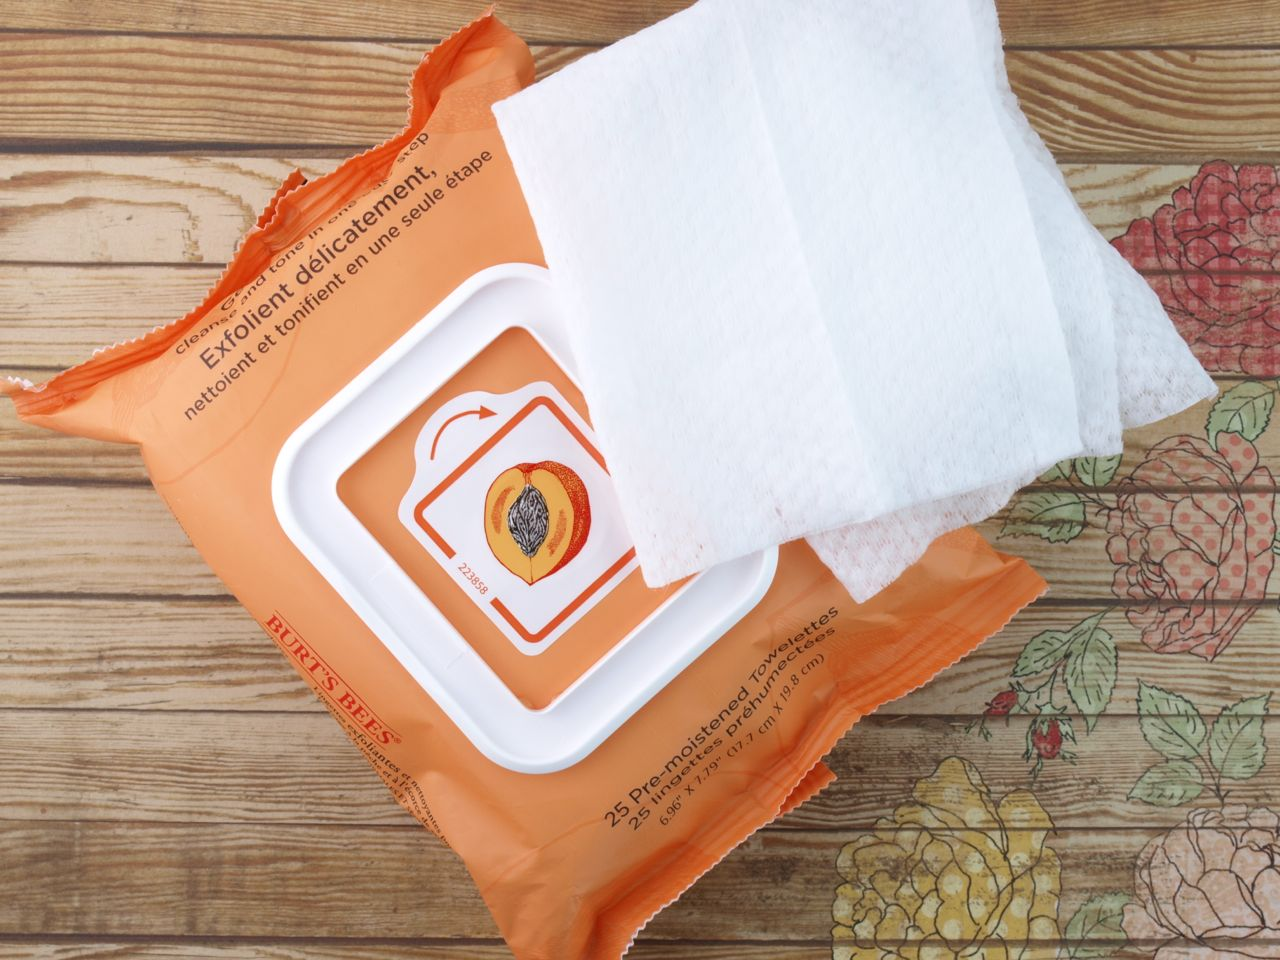 Facial Cleansing Towelettes - Peach & Willowbark Exfoliating by Burt's Bees #4